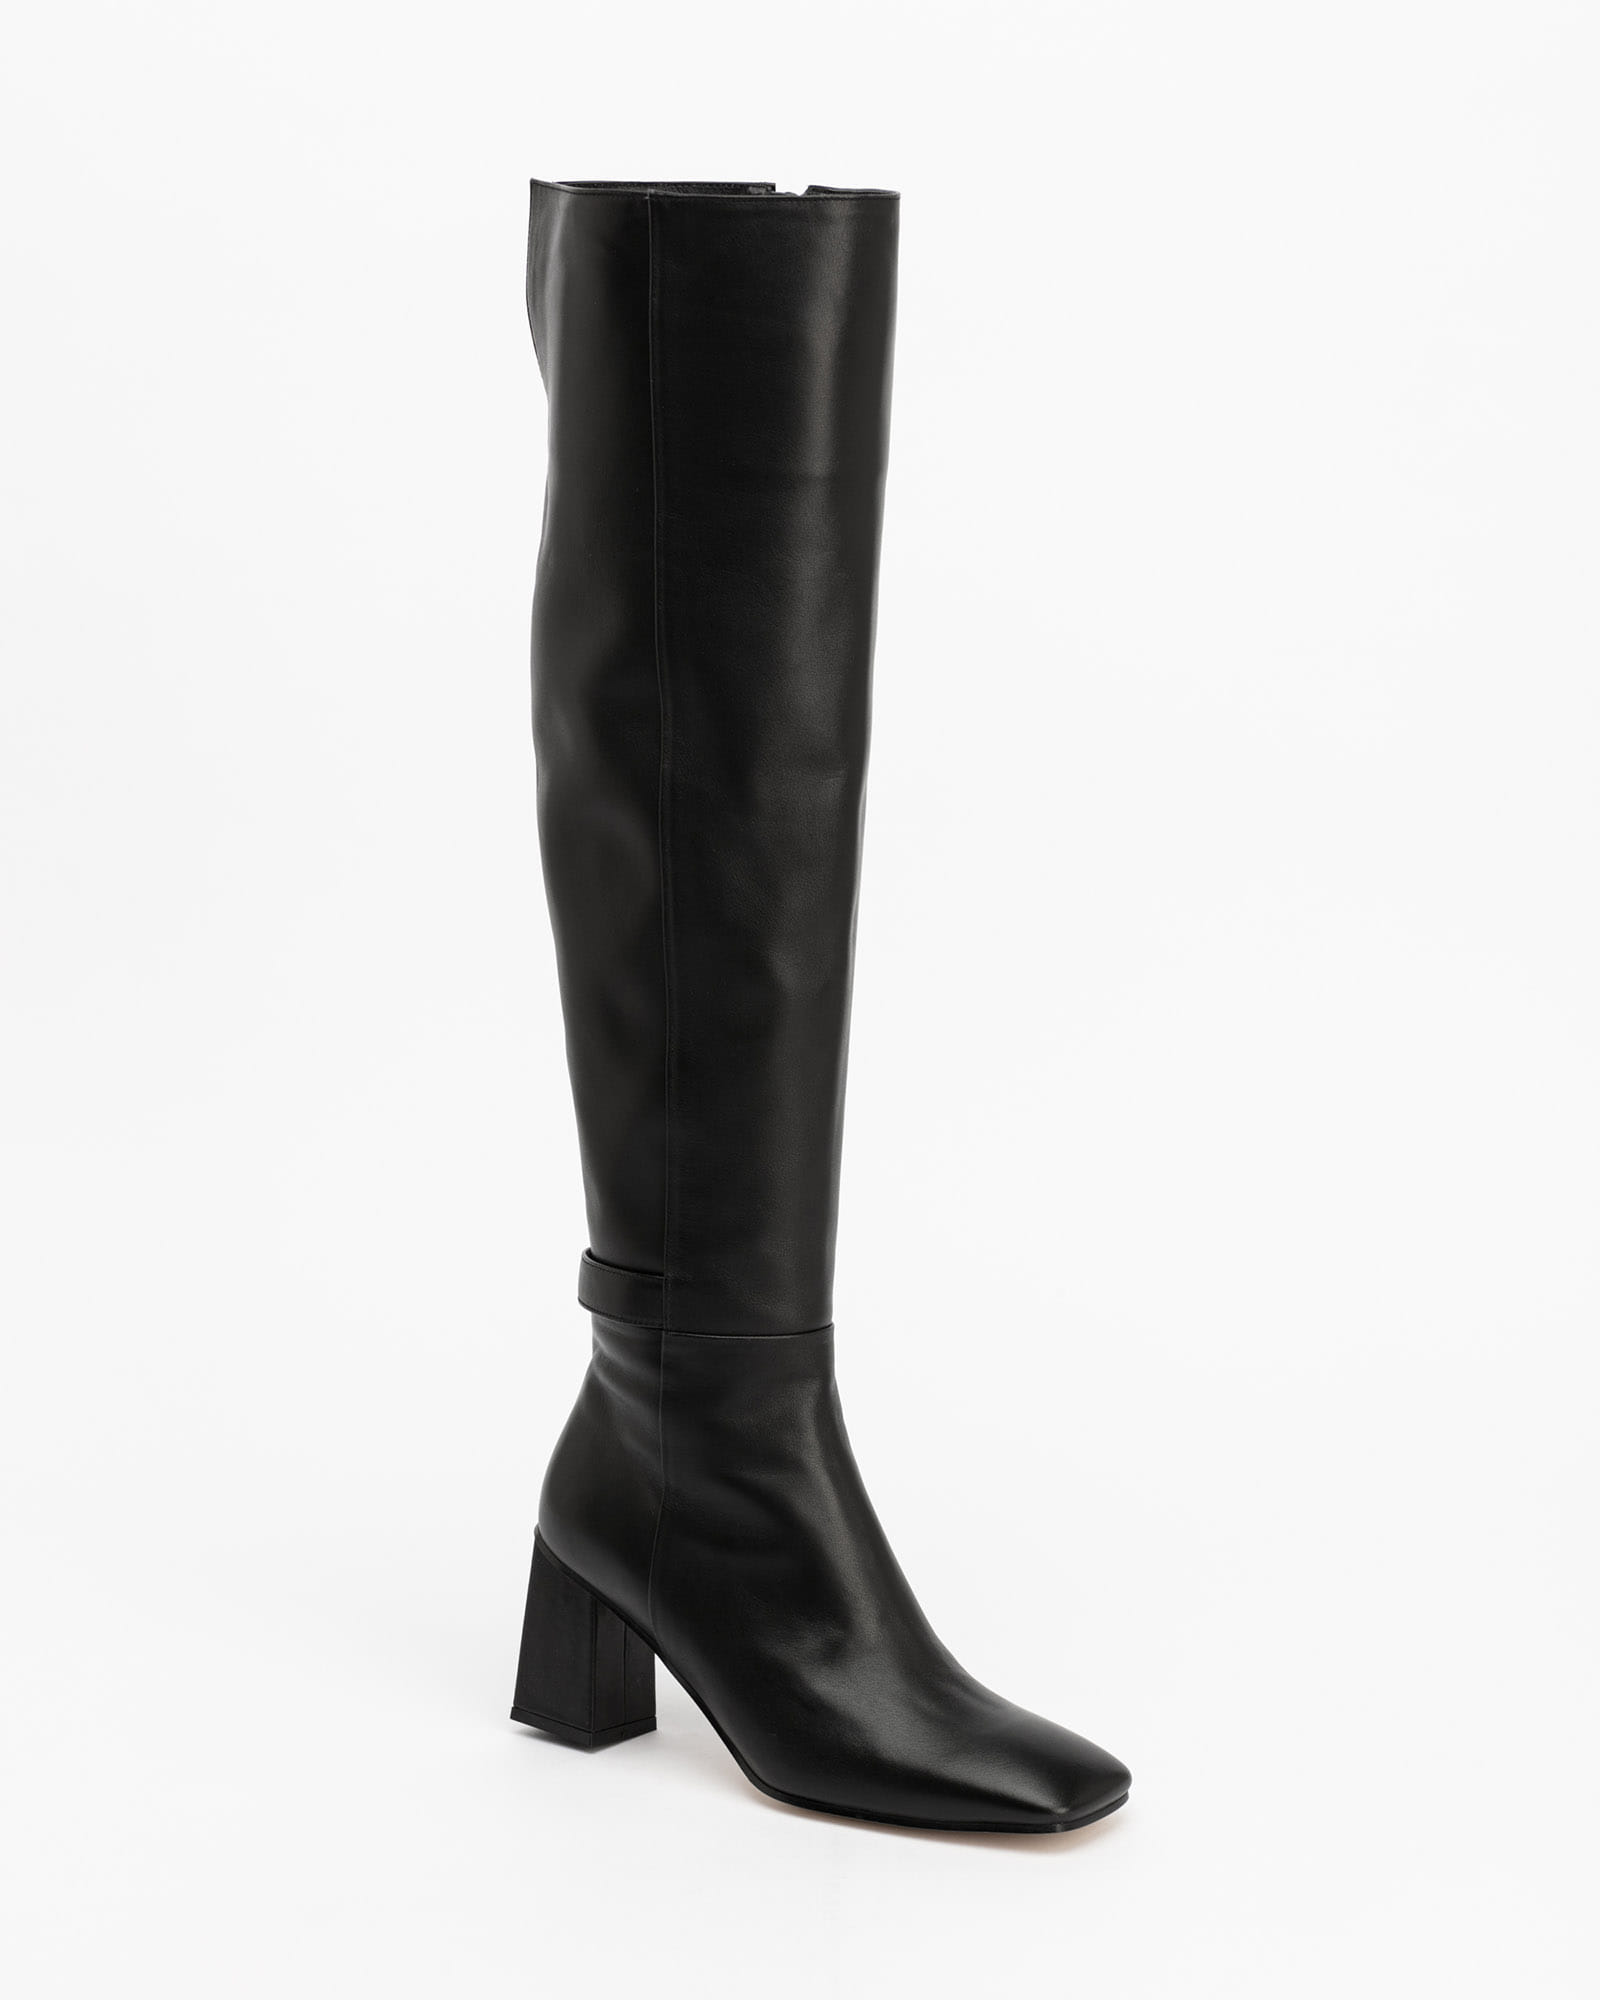 Armure Over-the-Knee Boots in Black